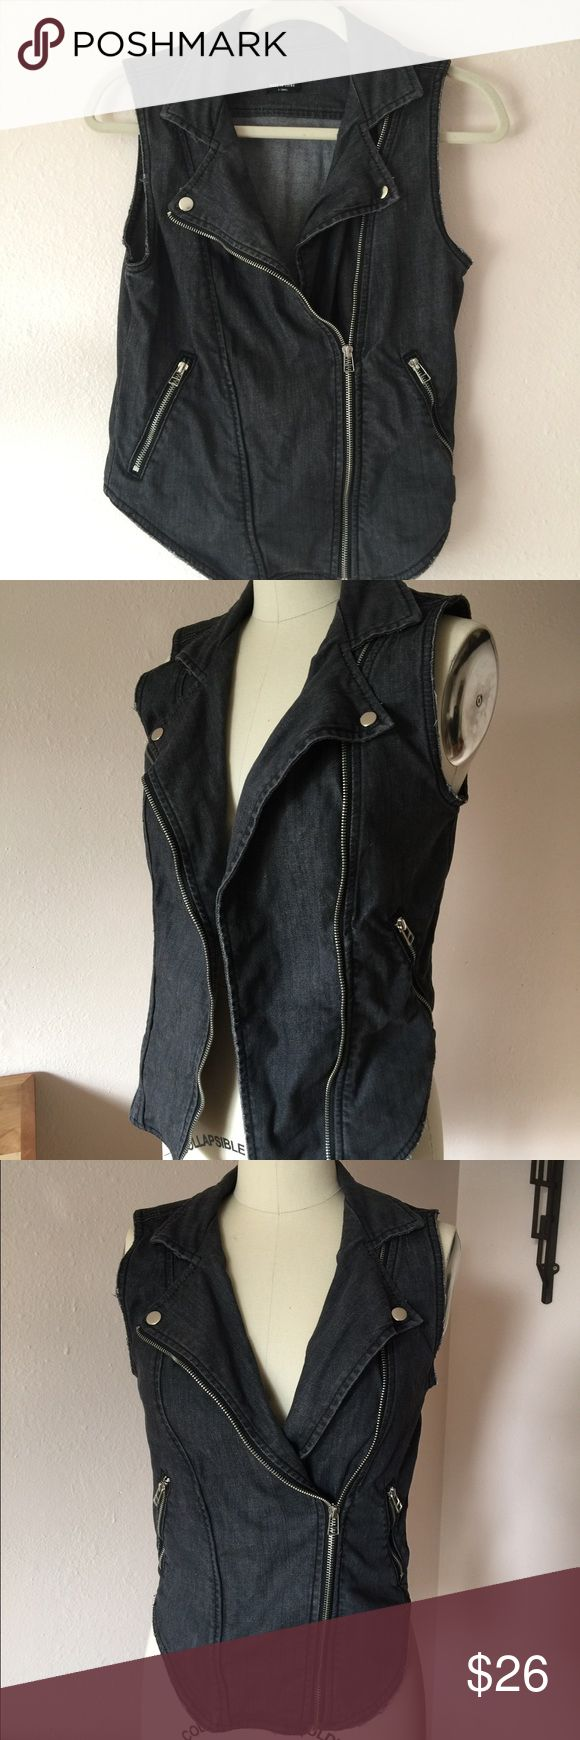 Urban Outfitters Kill City Grey Denim Moto Vest Kill City Urban Outfitters moto biker vest in dark grey Denim. Size XS. Button and zip closure. Super cute modern fit. Excellent pre-owned condition. Urban Outfitters Jackets & Coats Vests